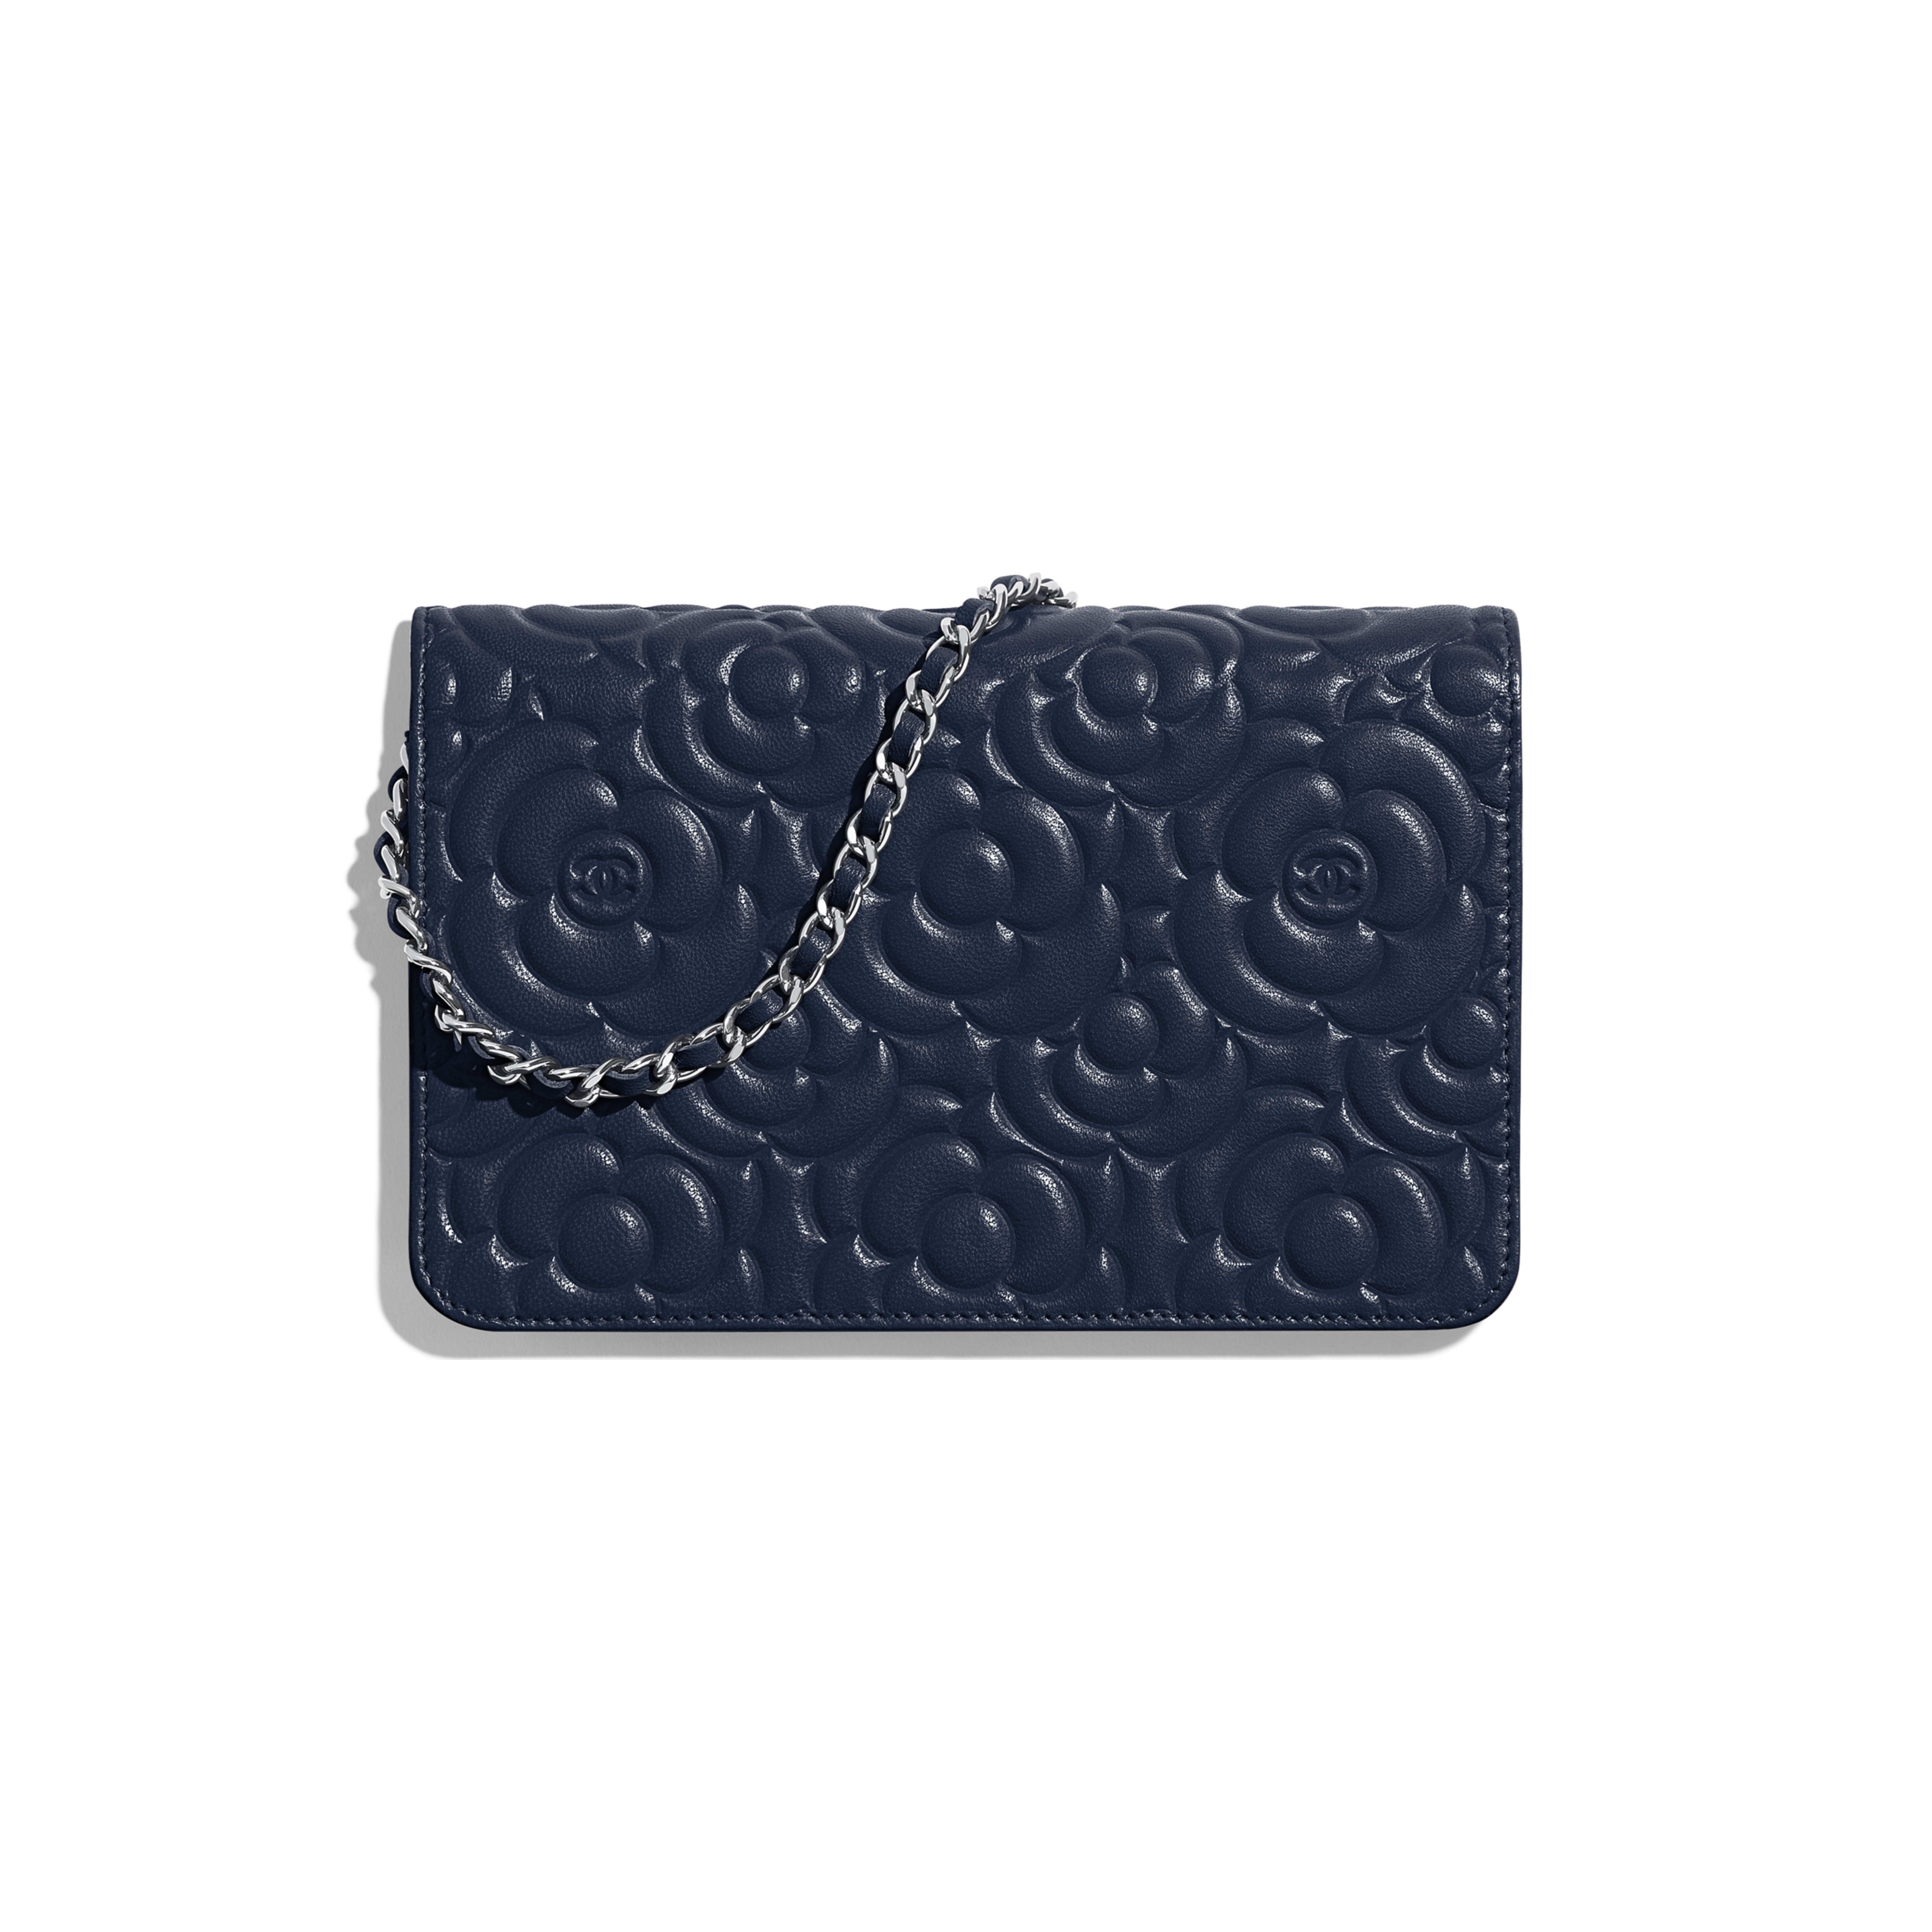 Wallet on Chain - Navy Blue - Lambskin & Silver-Tone Metal - Alternative view - see full sized version